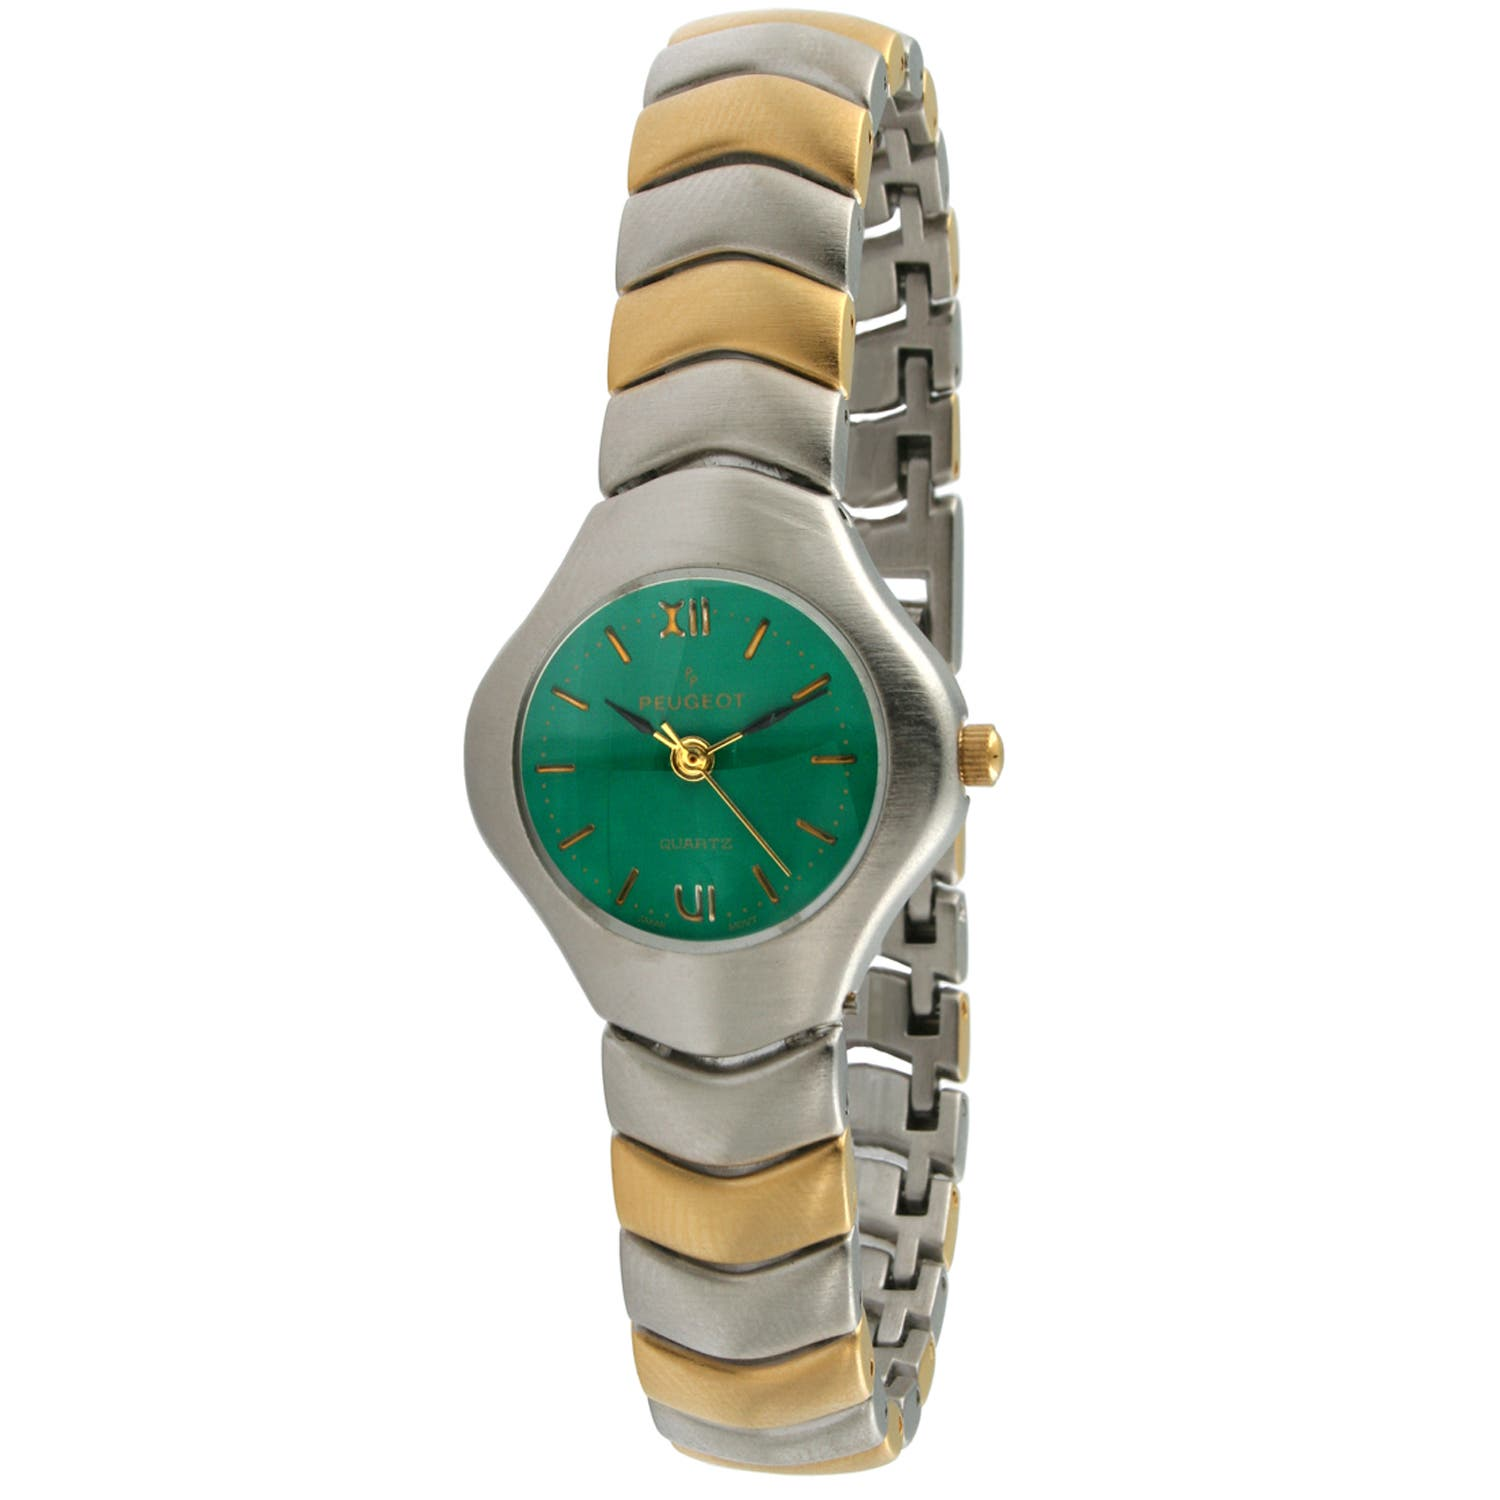 Peugeot Women's Green Dial Wave Link Watch https://ak1.ostkcdn.com/images/products/7194555/80/575/Peugeot-Womens-Green-Dial-Wave-Link-Watch-P14681301.jpg?impolicy=medium